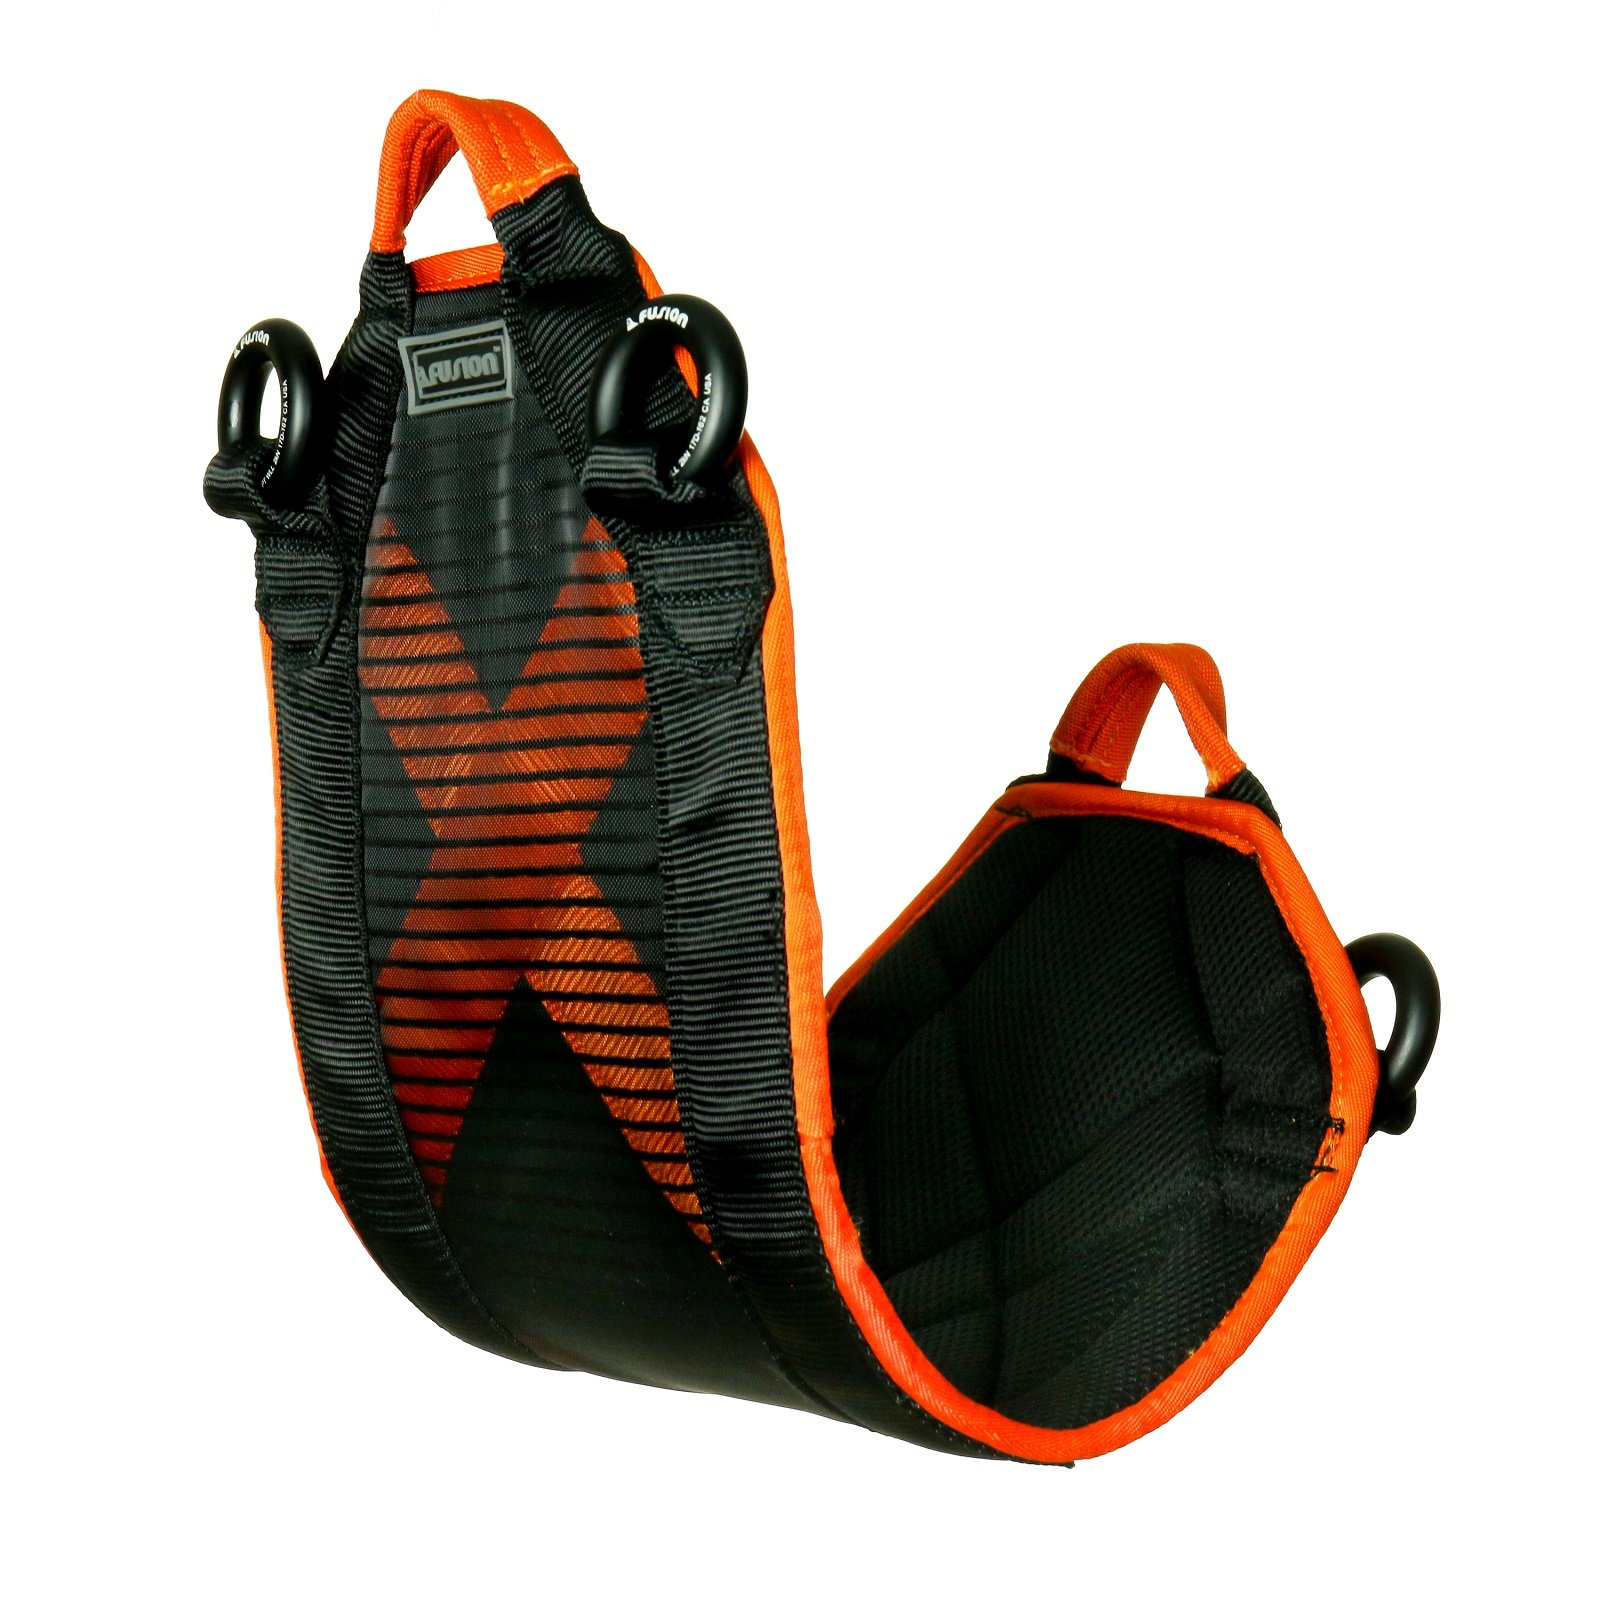 Fusion Climb Portable PRESTO X FIT GYM system - Superior X Leg Pad, MADE IN USA by Fusion Climb